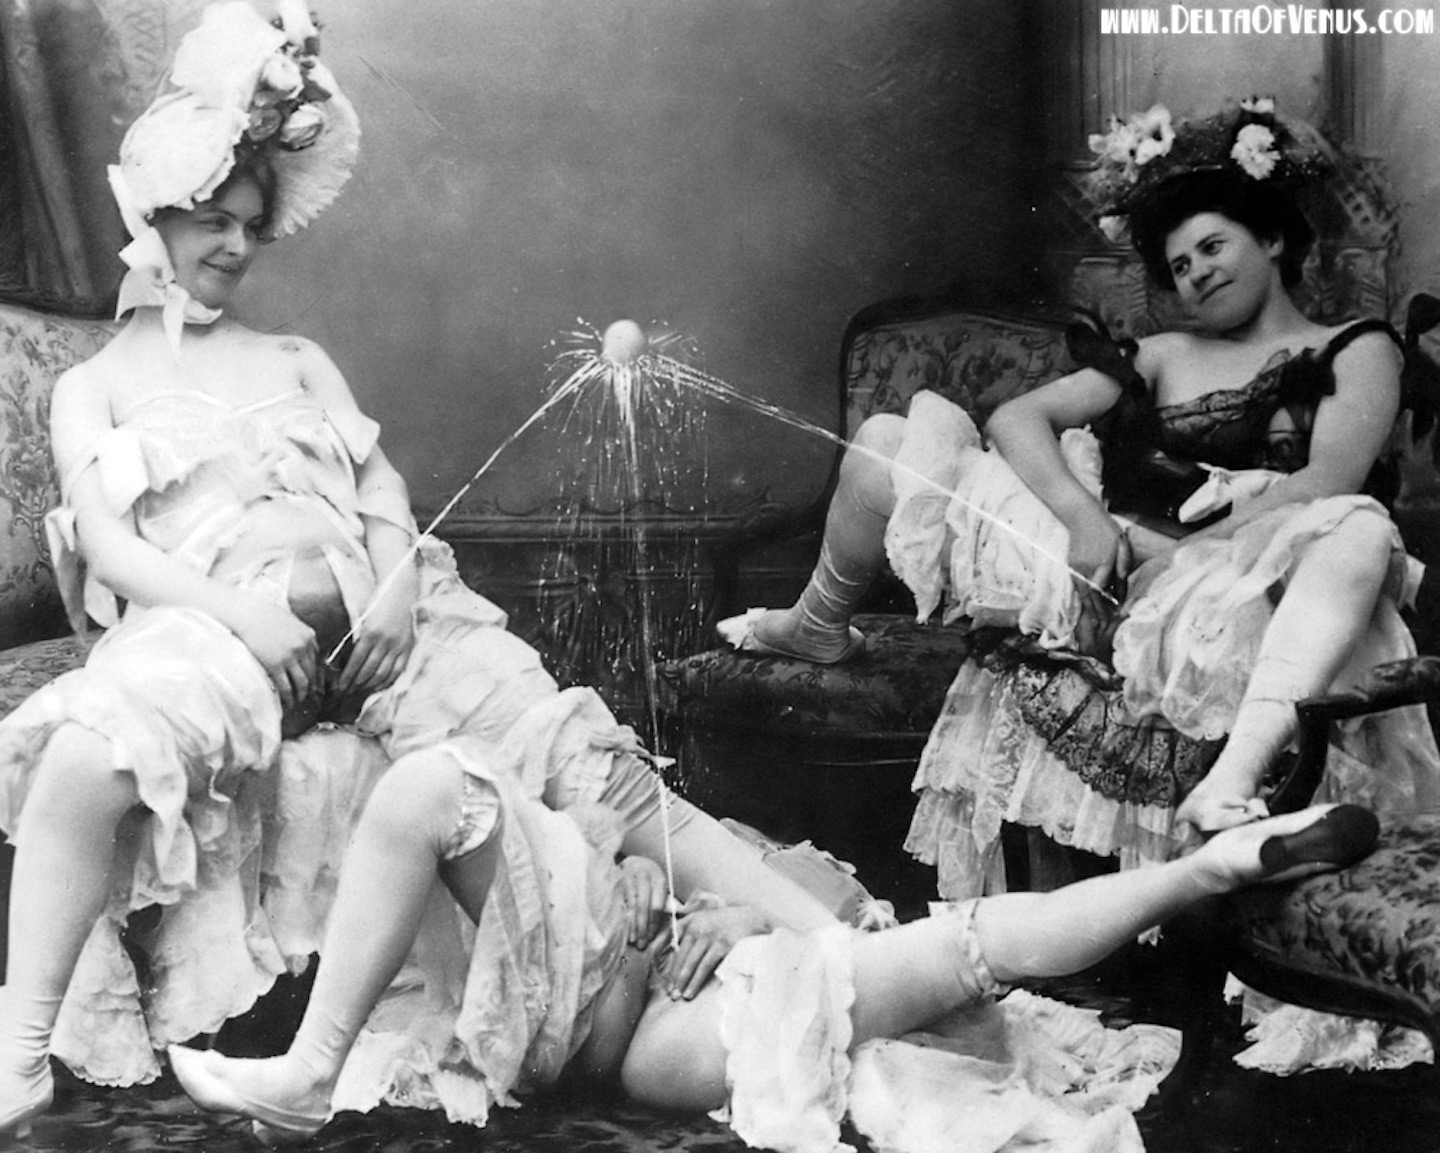 porn-movie-with-victorian-period-costumes-freemovies-of-girls-wetting-the-bed